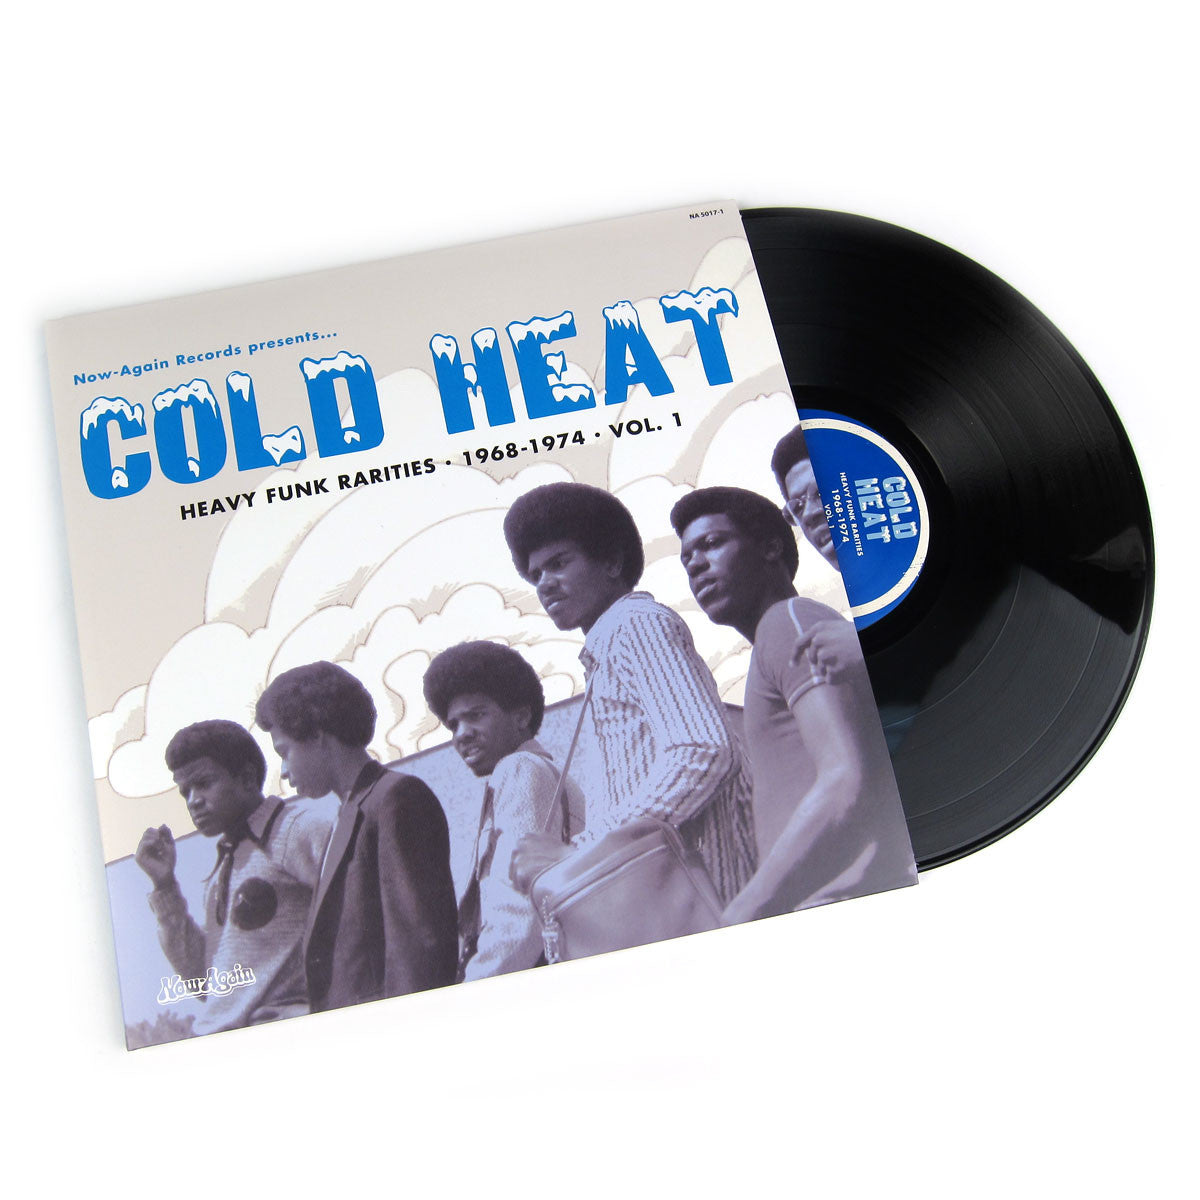 Now Again: Cold Heat - Heavy Funk Rarities 1968-1974 Vol.1 Vinyl 2LP